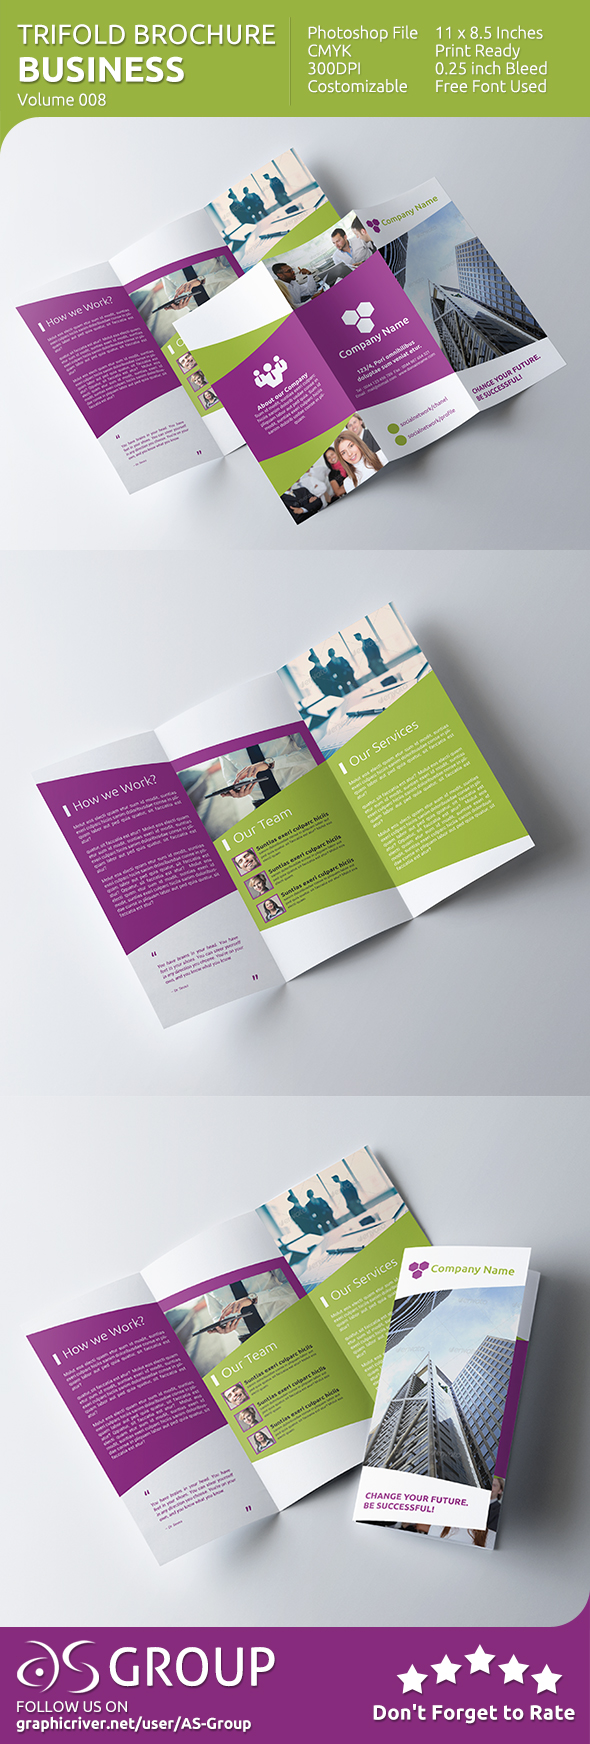 business_tri-fold-brochure-v008-preview